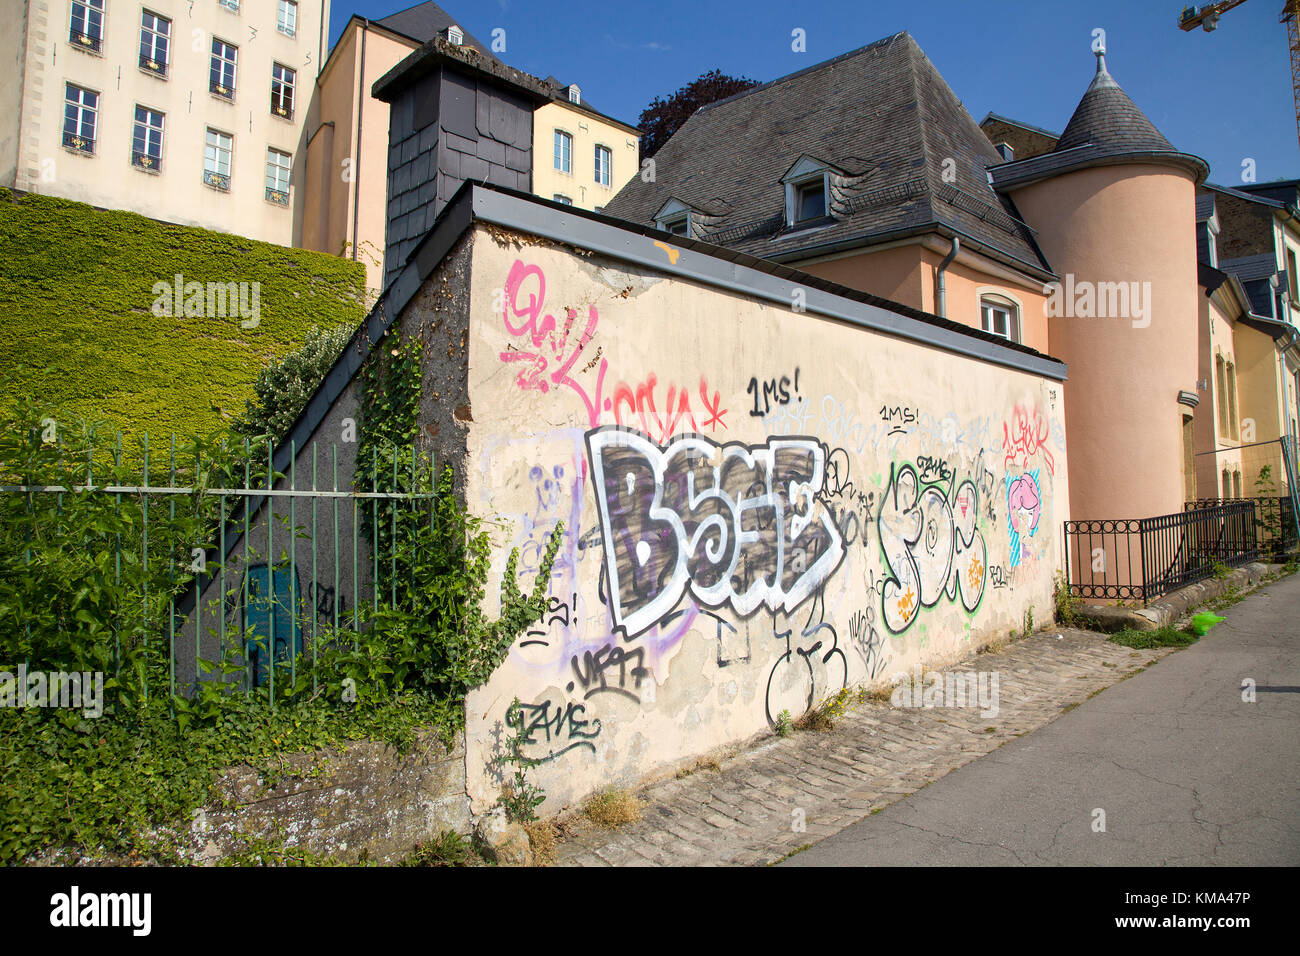 Graffiti at a mural, upper city, Luxembourg-city, Luxembourg, Europe - Stock Image